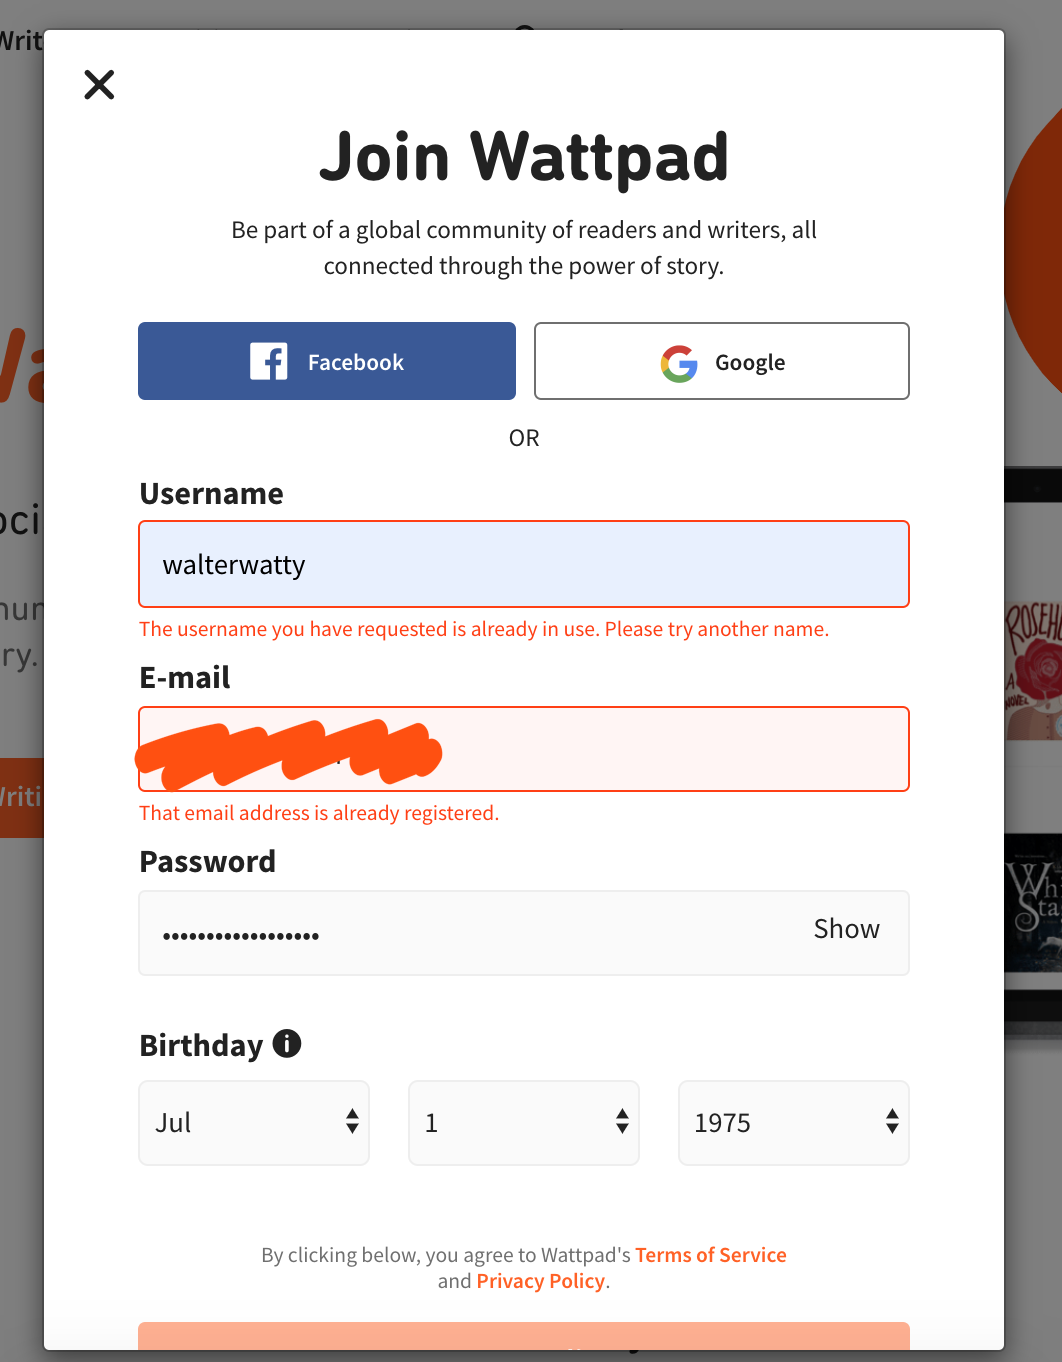 A screenshot of the sign up pop-out window, with the Username, Email, Password, and birthday fields filled in. The 'Start Writing' button appears beneath these fields.